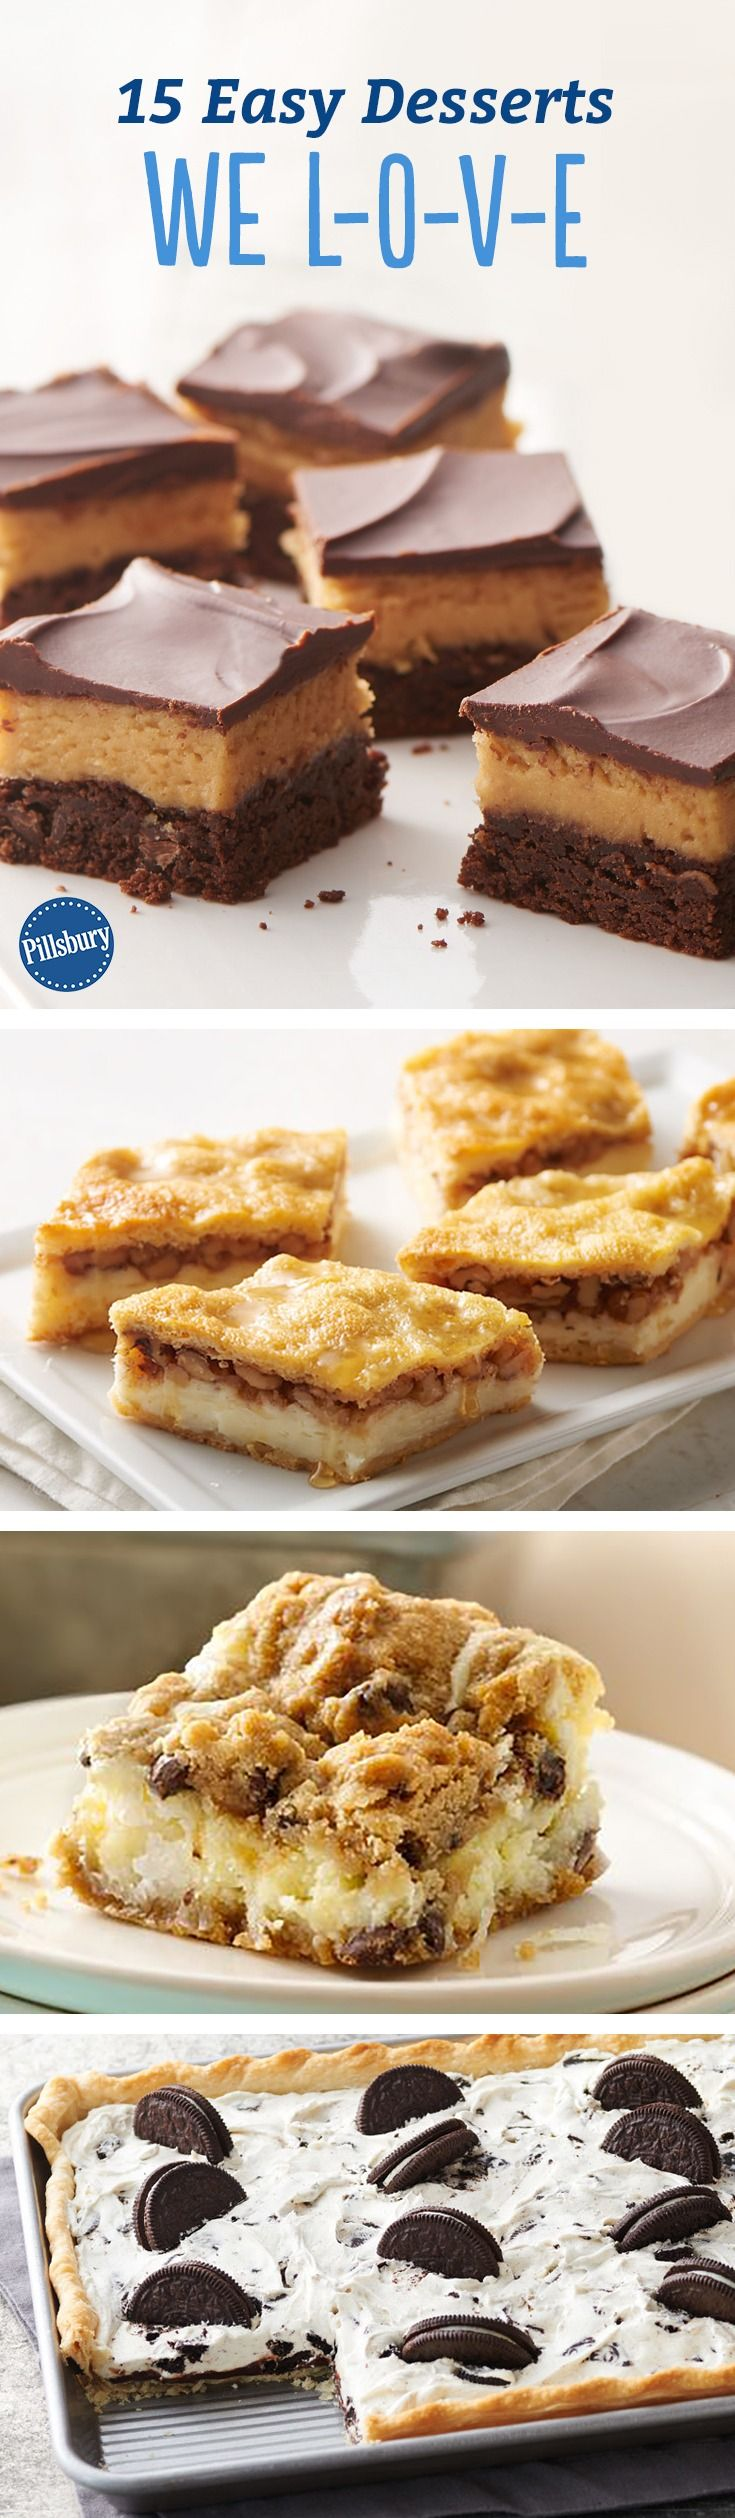 15 Easy Desserts We L-O-V-E - Sweets for your sweeties. From baklava cheesecake bars to Oreo slab pie, we've got something everyone will love!